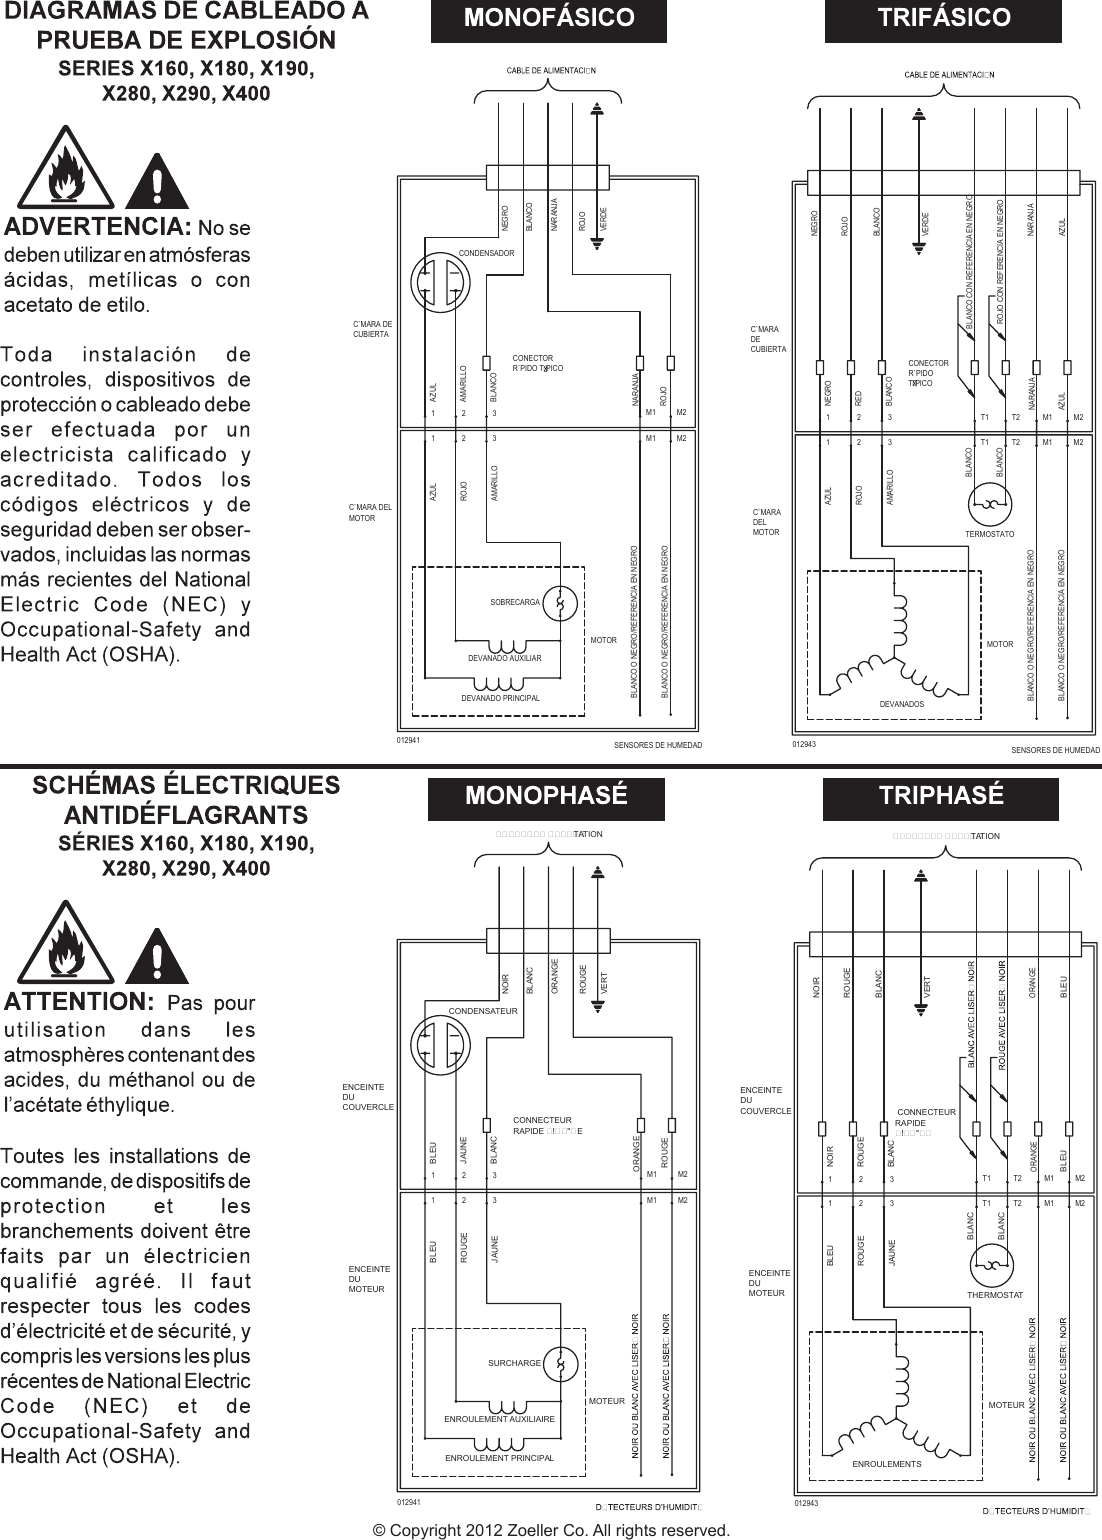 3632 4 zoeller x190 explosion proof wiring diagram user manual